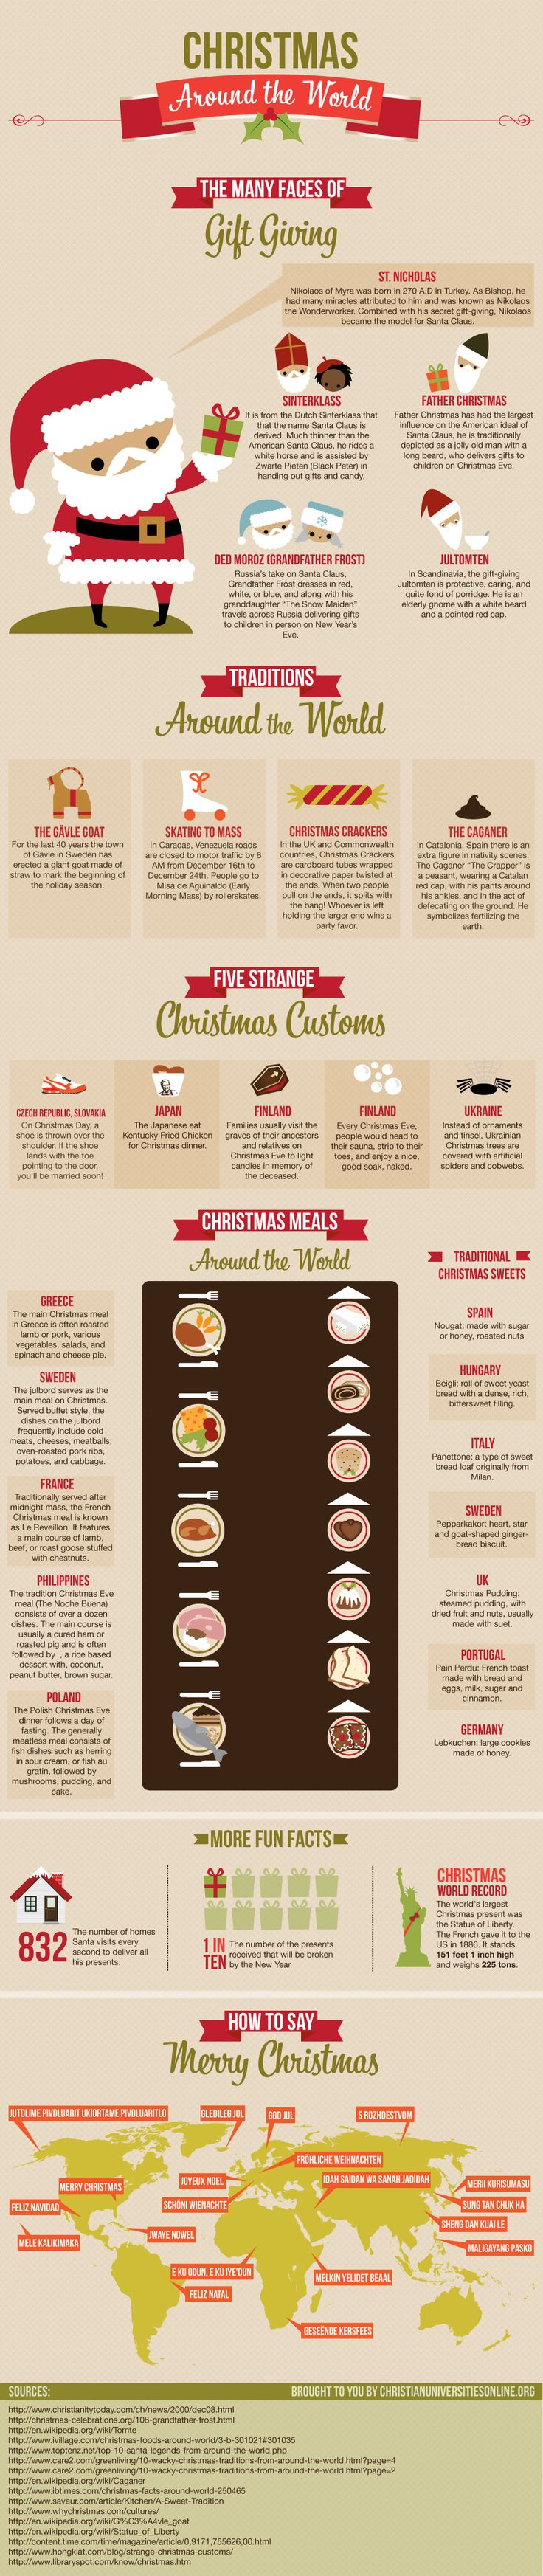 Christmas traditions around the world #ABeginnersGuideToChristmas #ChristmasHistory #ChristmasTraditions